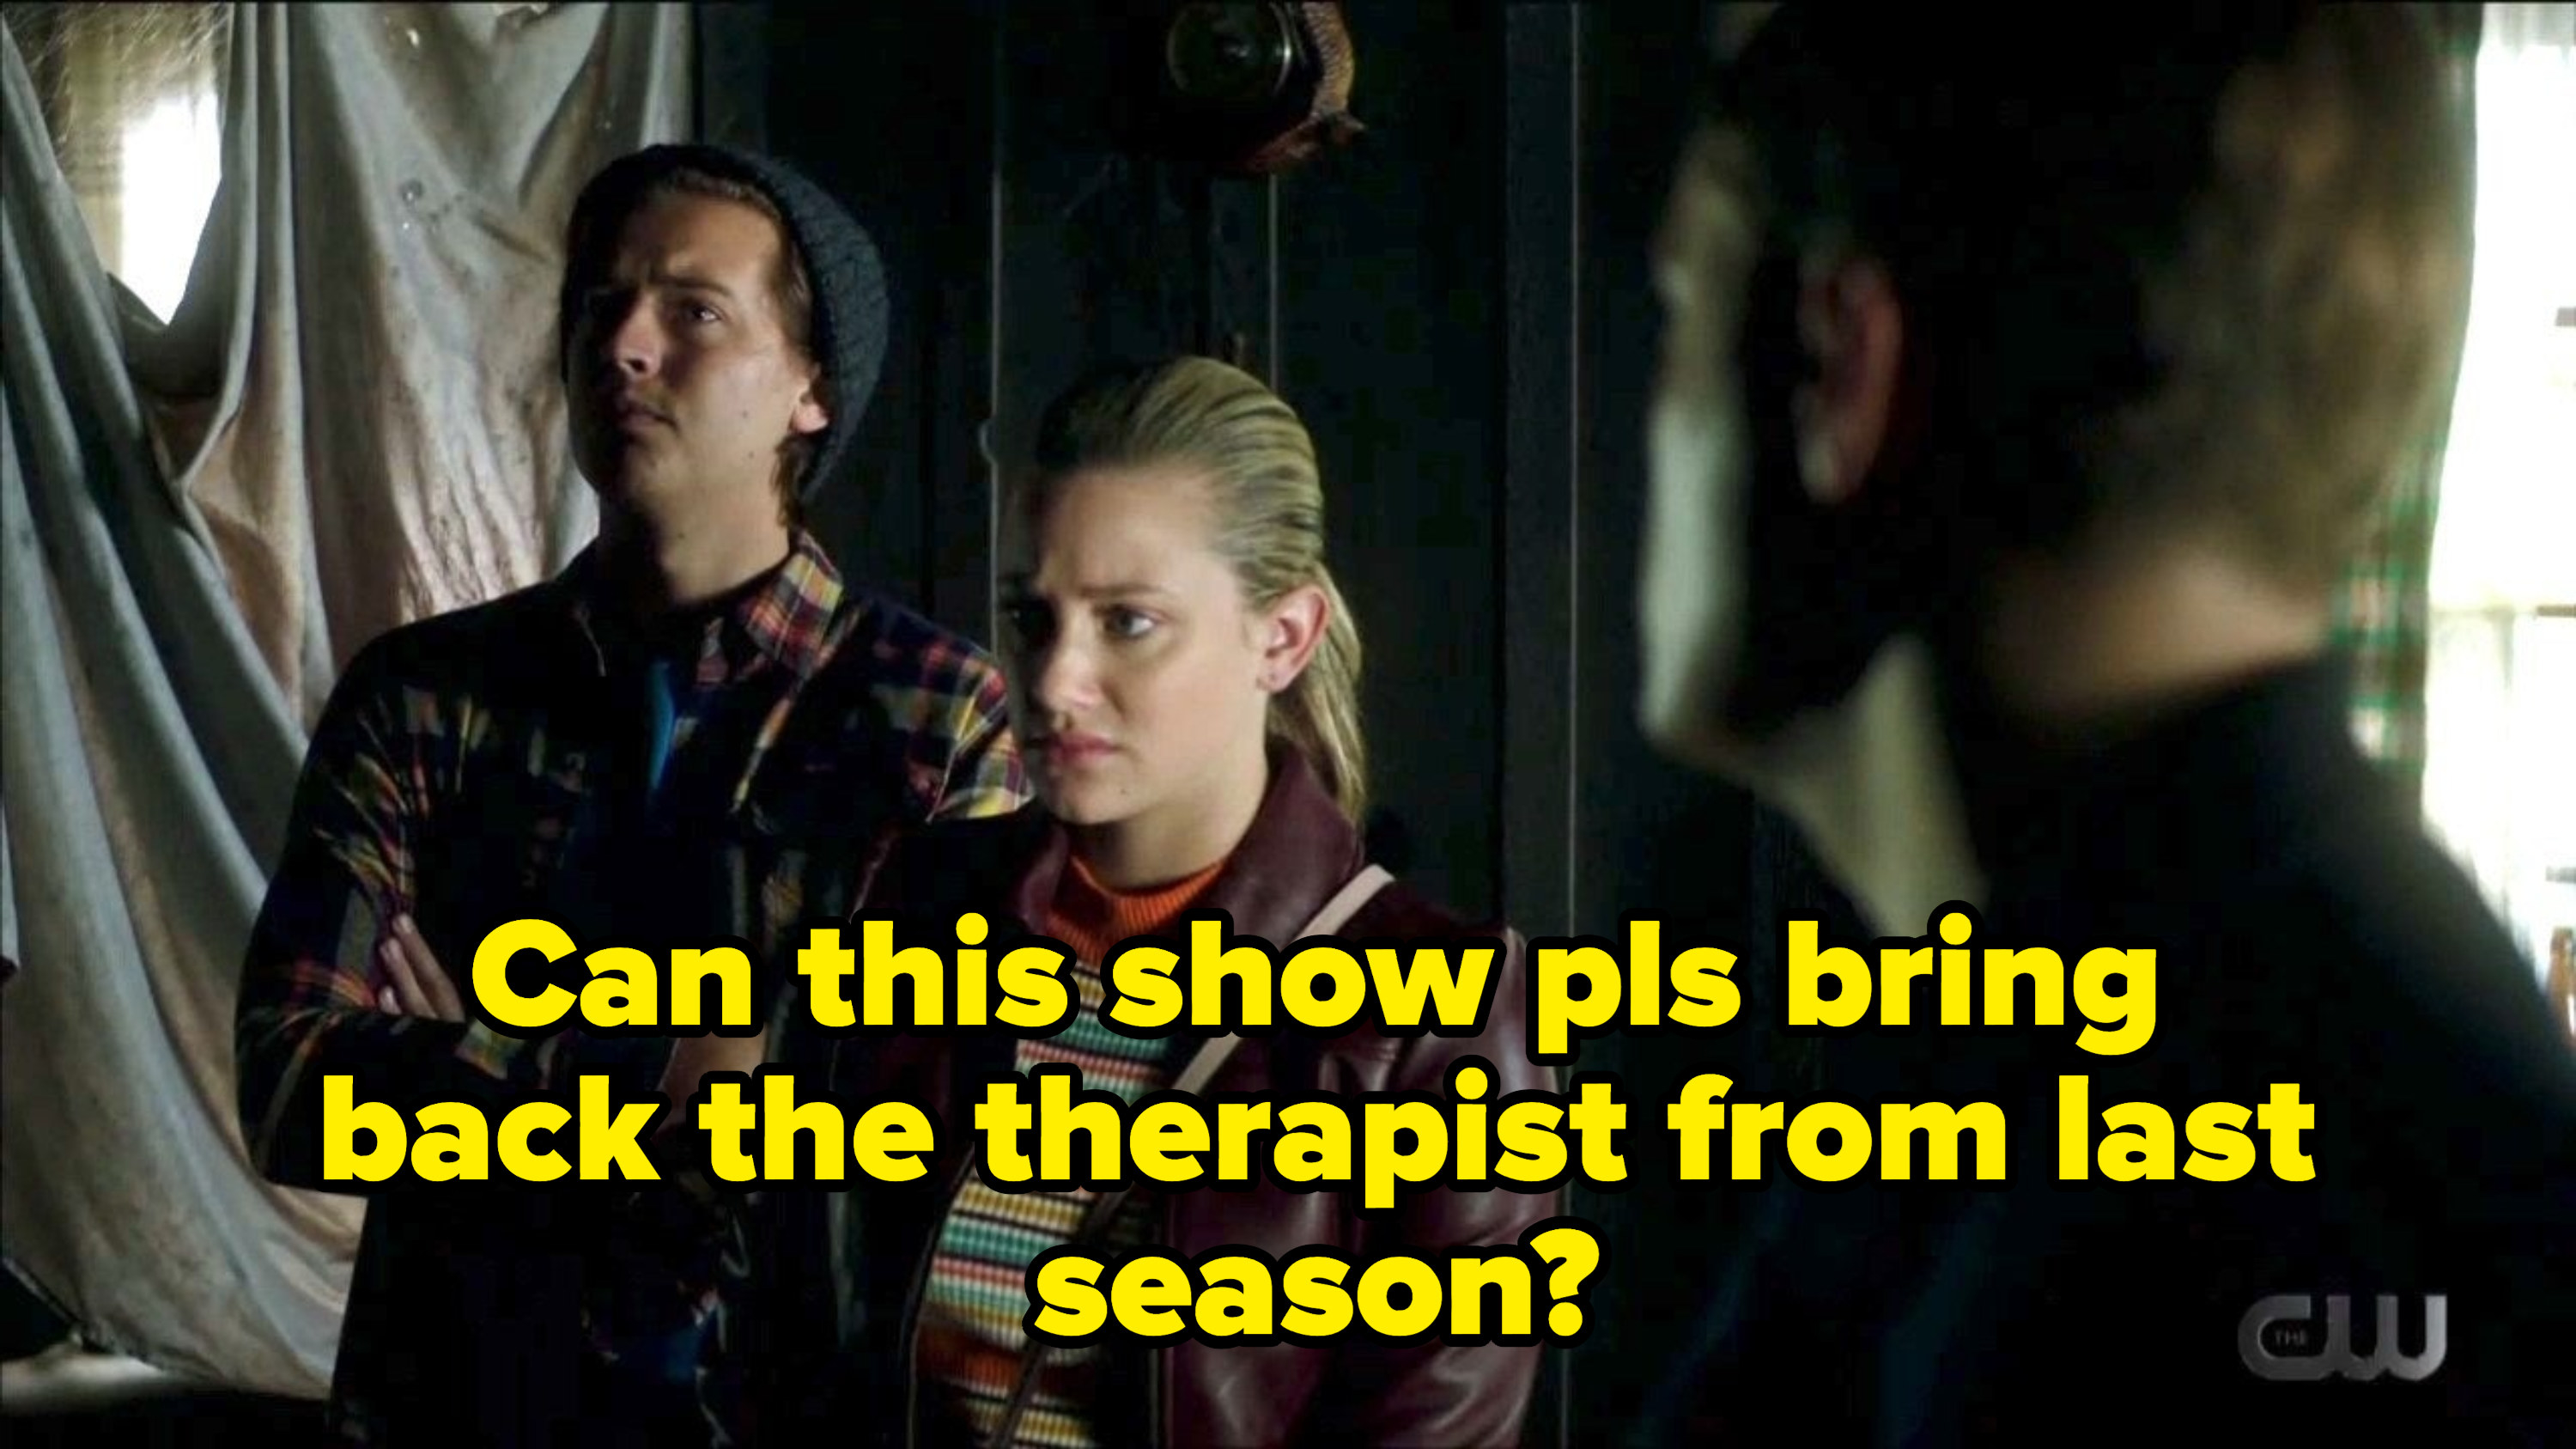 A picture of Betty and Jughead with a caption about bringing back the therapist from last season